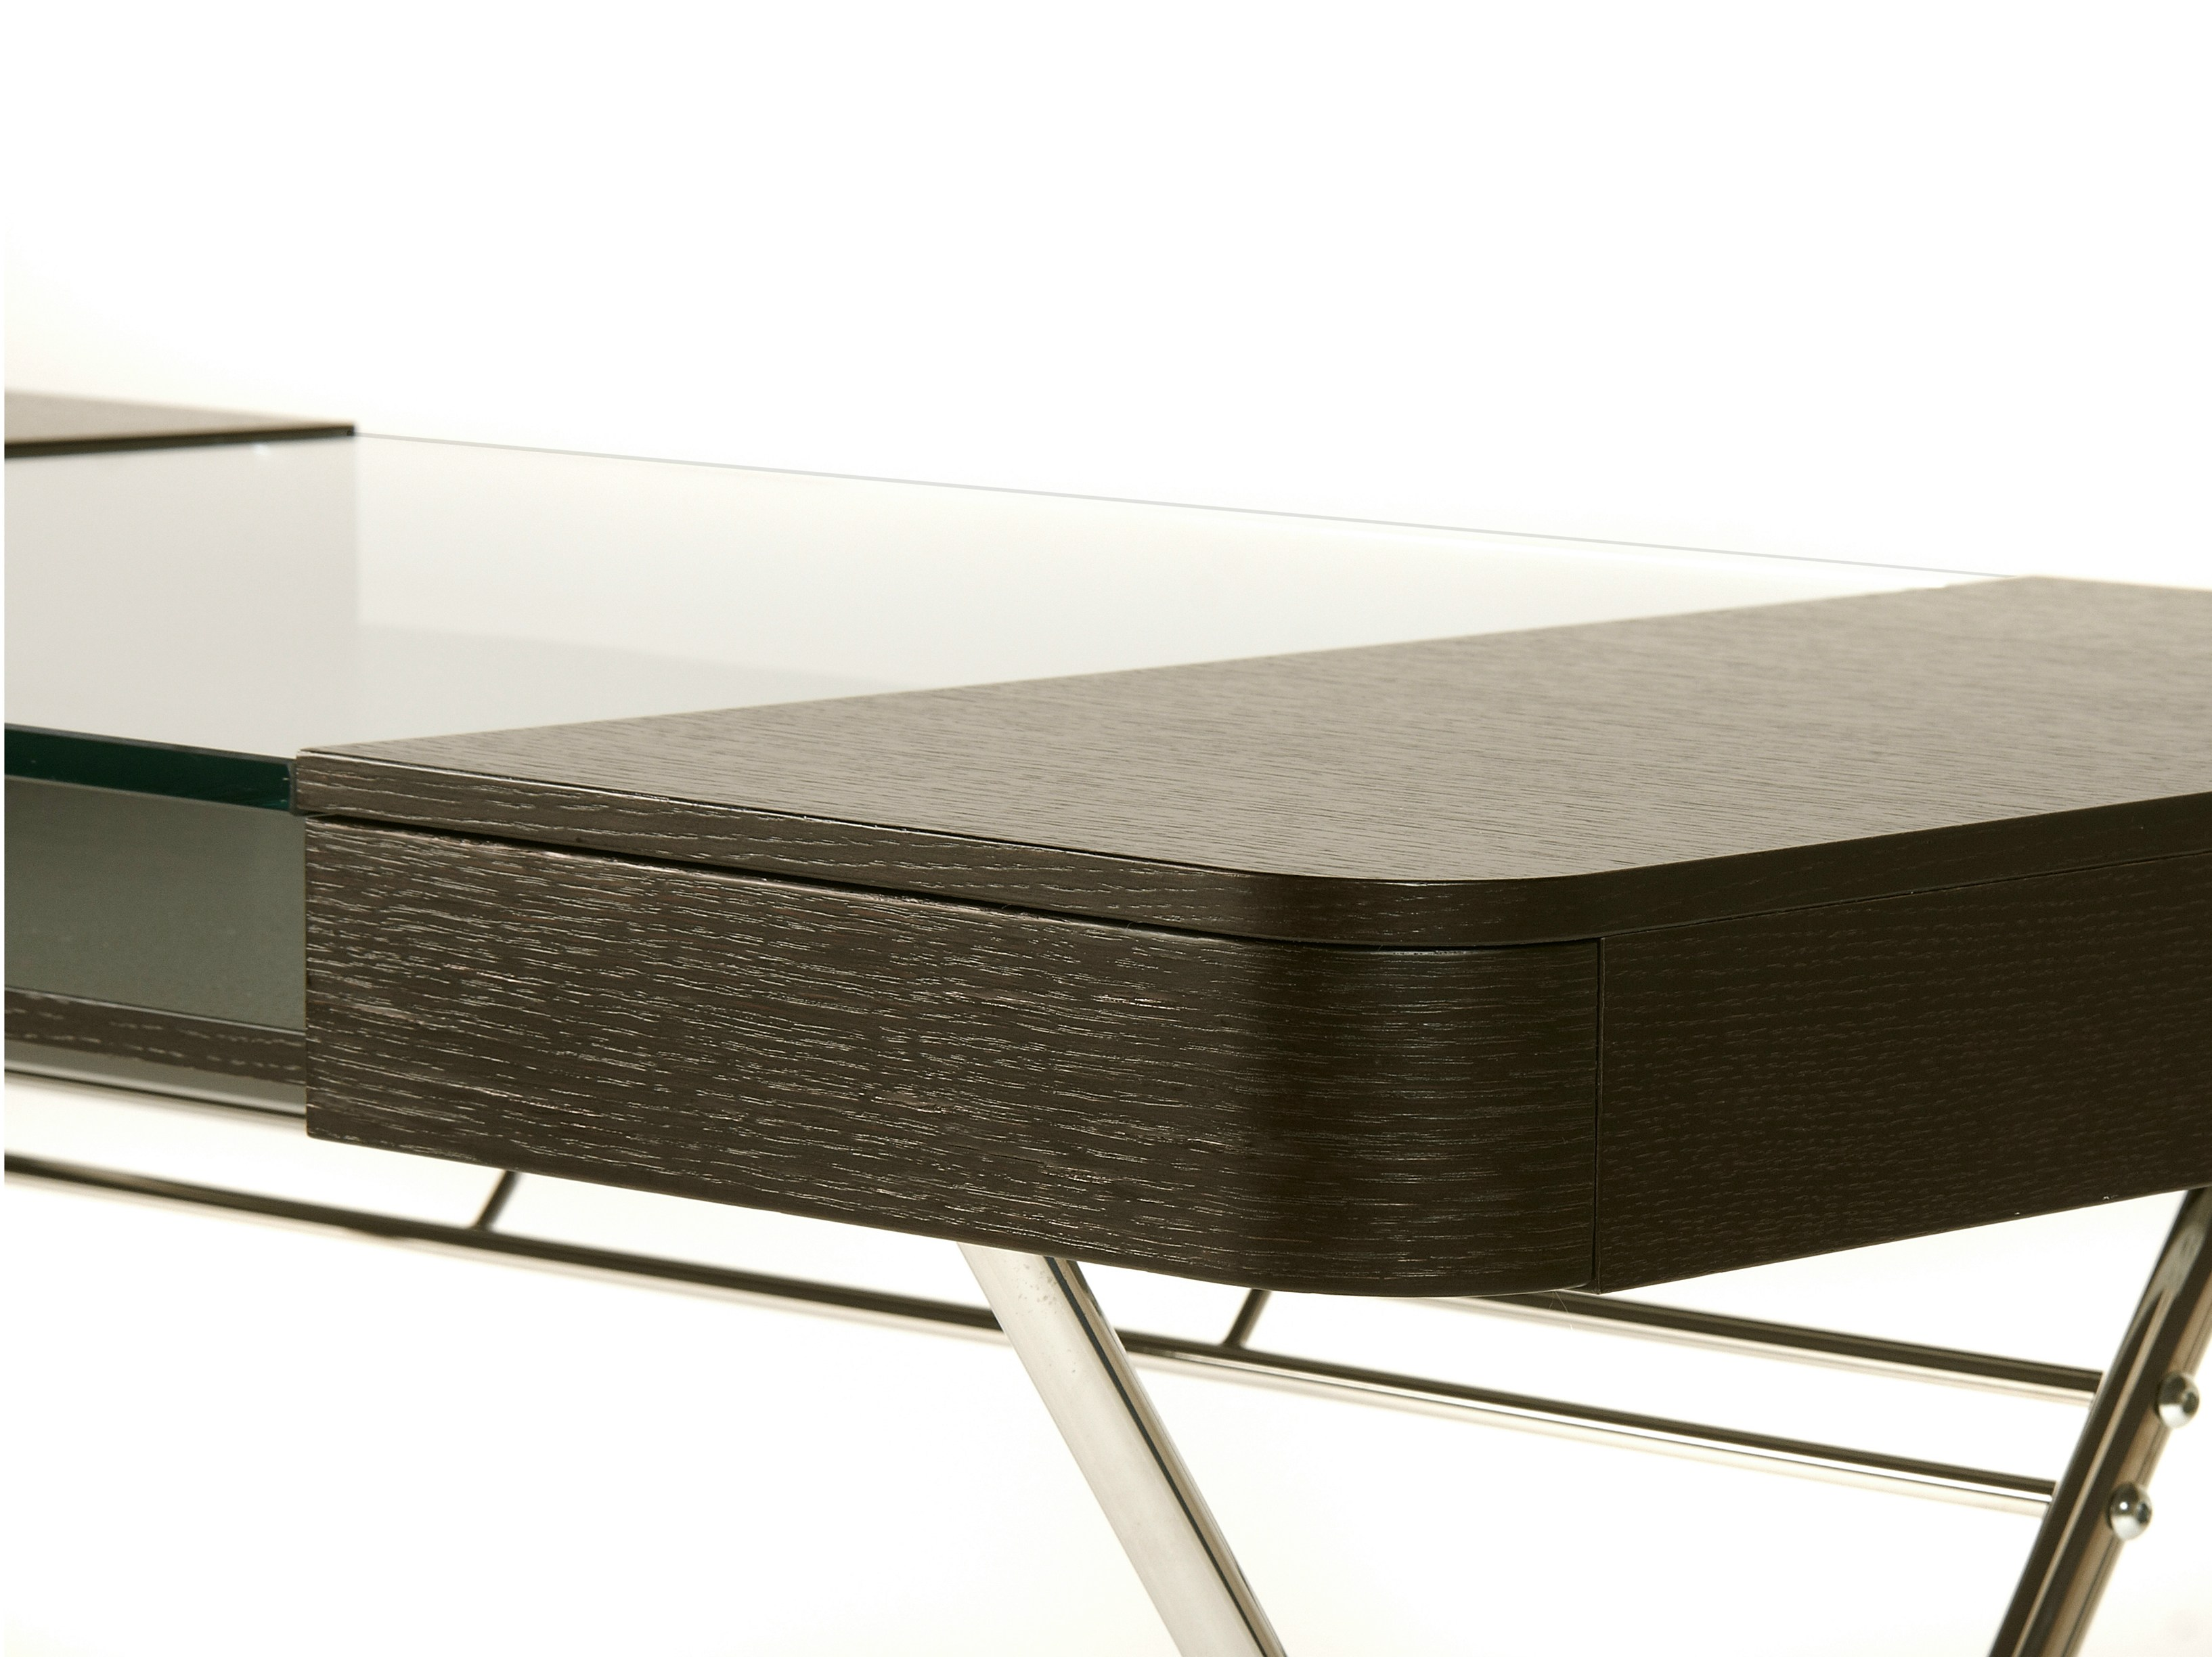 Wood Writing Desk With Drawers And Glass Top COSIMO WENGÈ By Adentro Design  Marco Zanuso